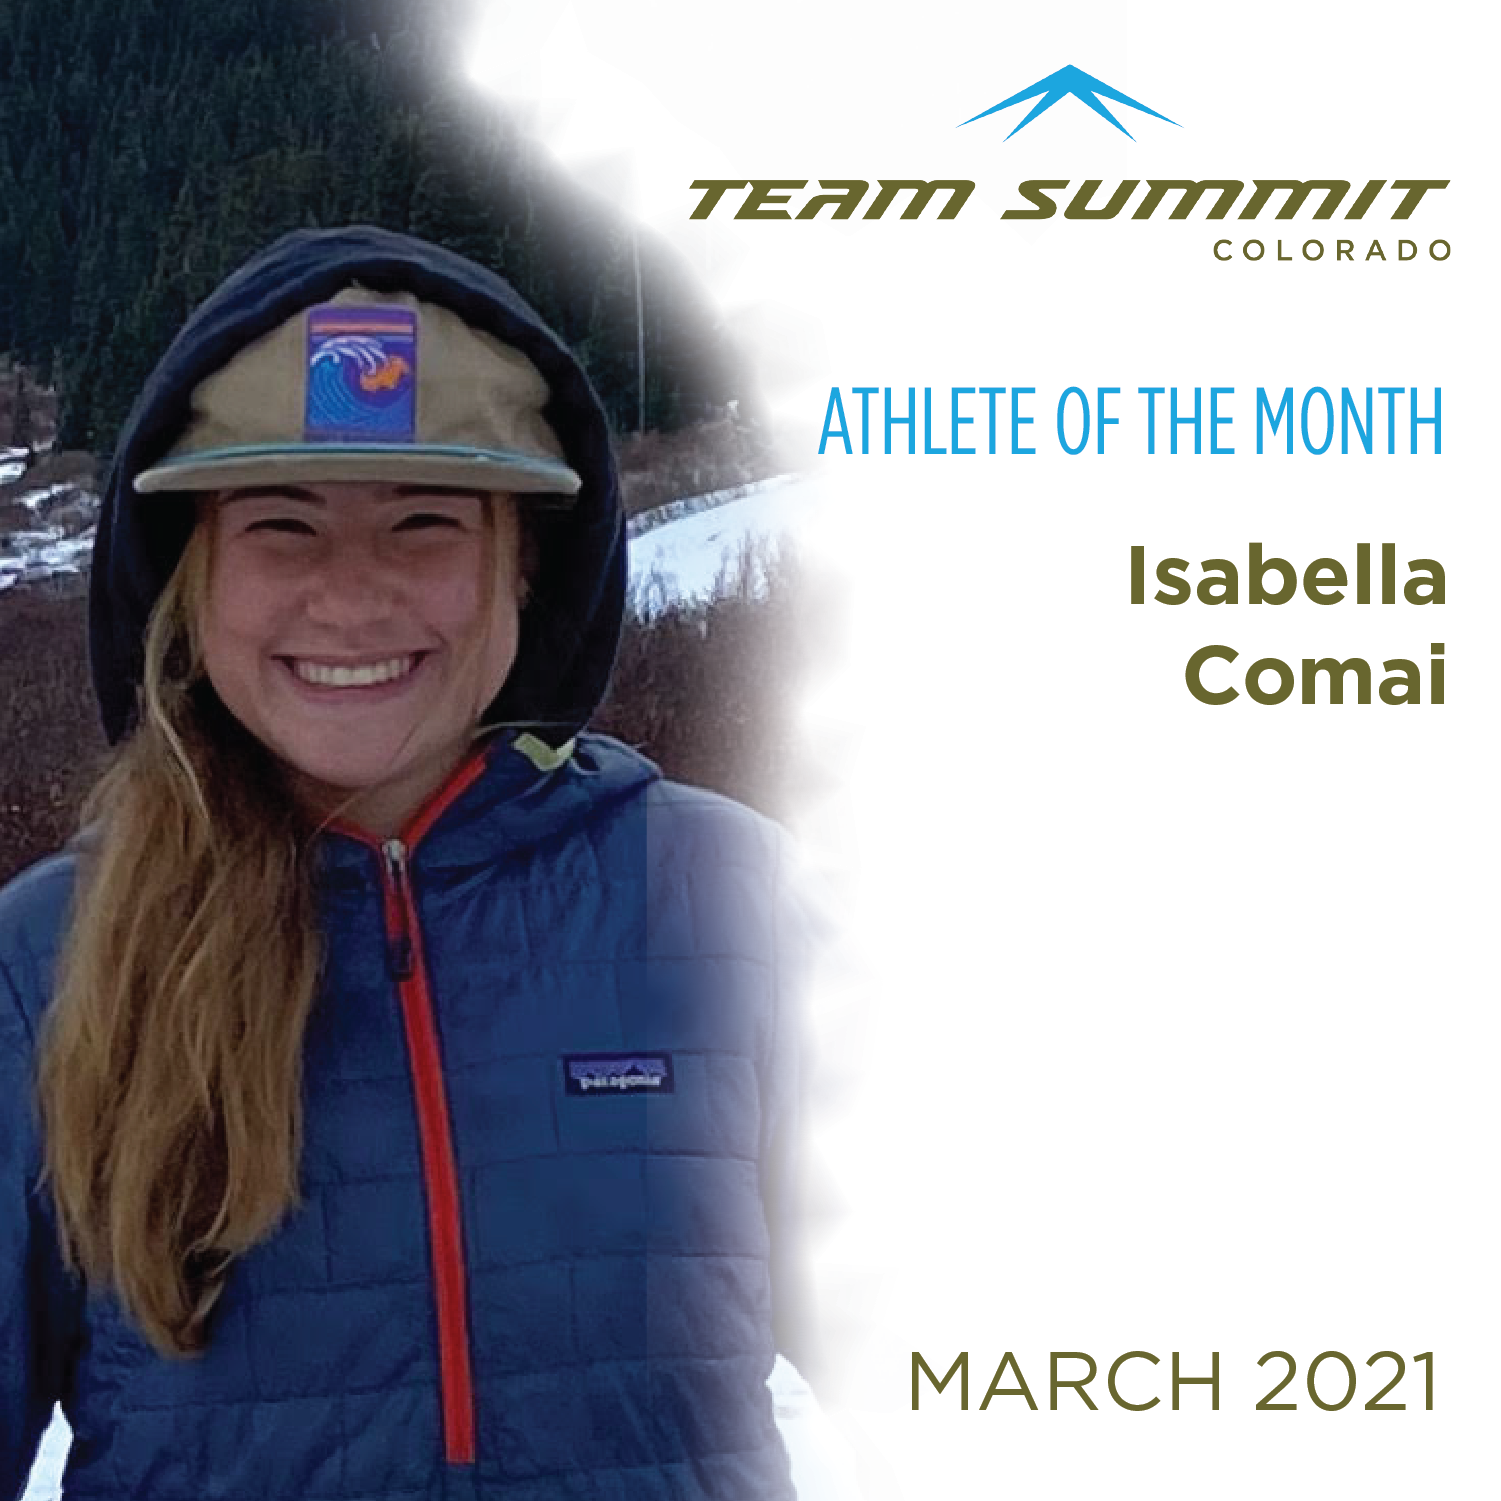 March_21_Isabella_Comai_ATHLETE_OF_THE_MONTH_March_21.png